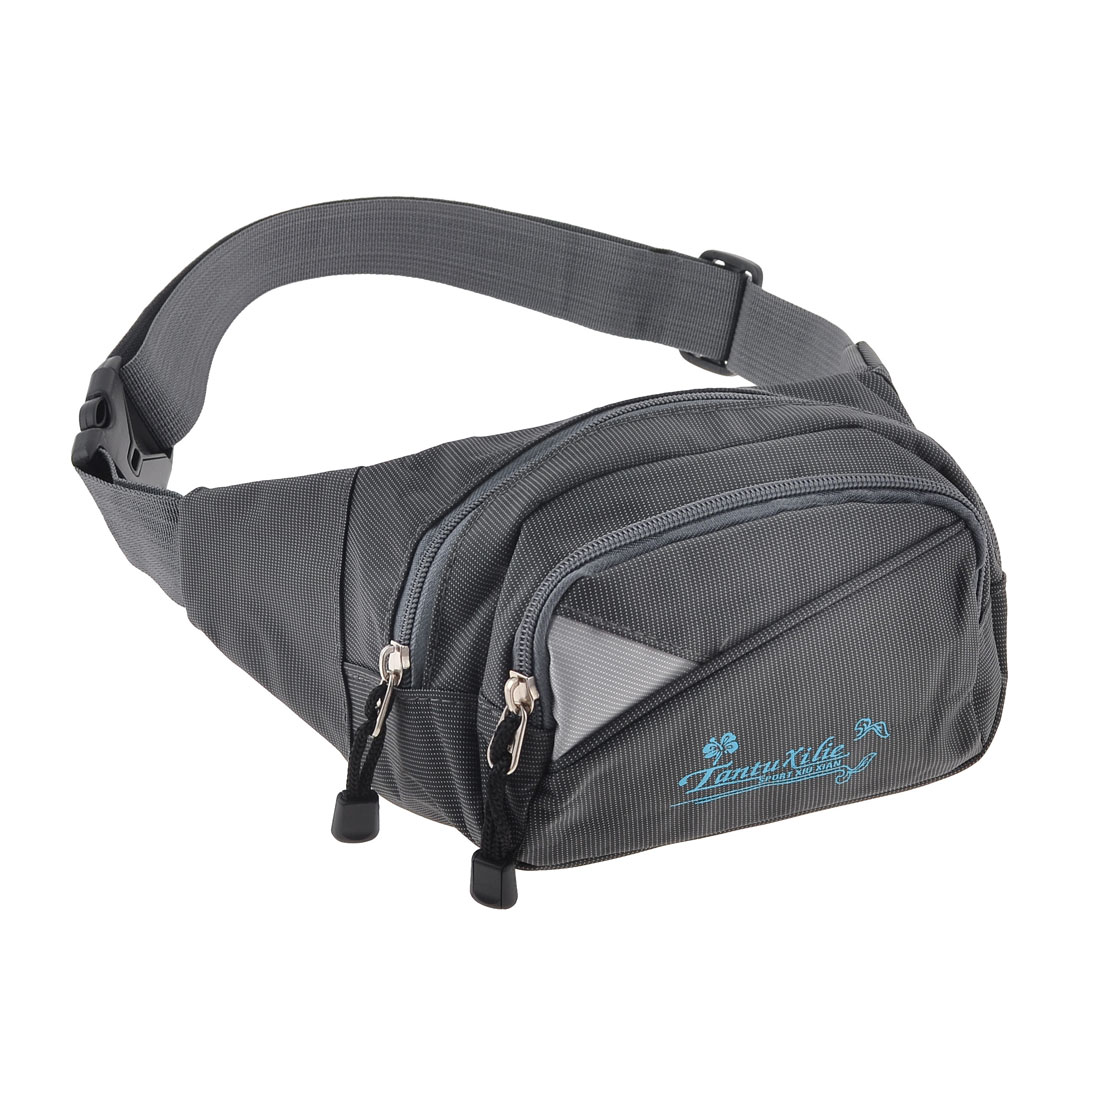 Men Riding Portable Zipper Closure 3 Compartments Nylon Casual Waist Pack Gray